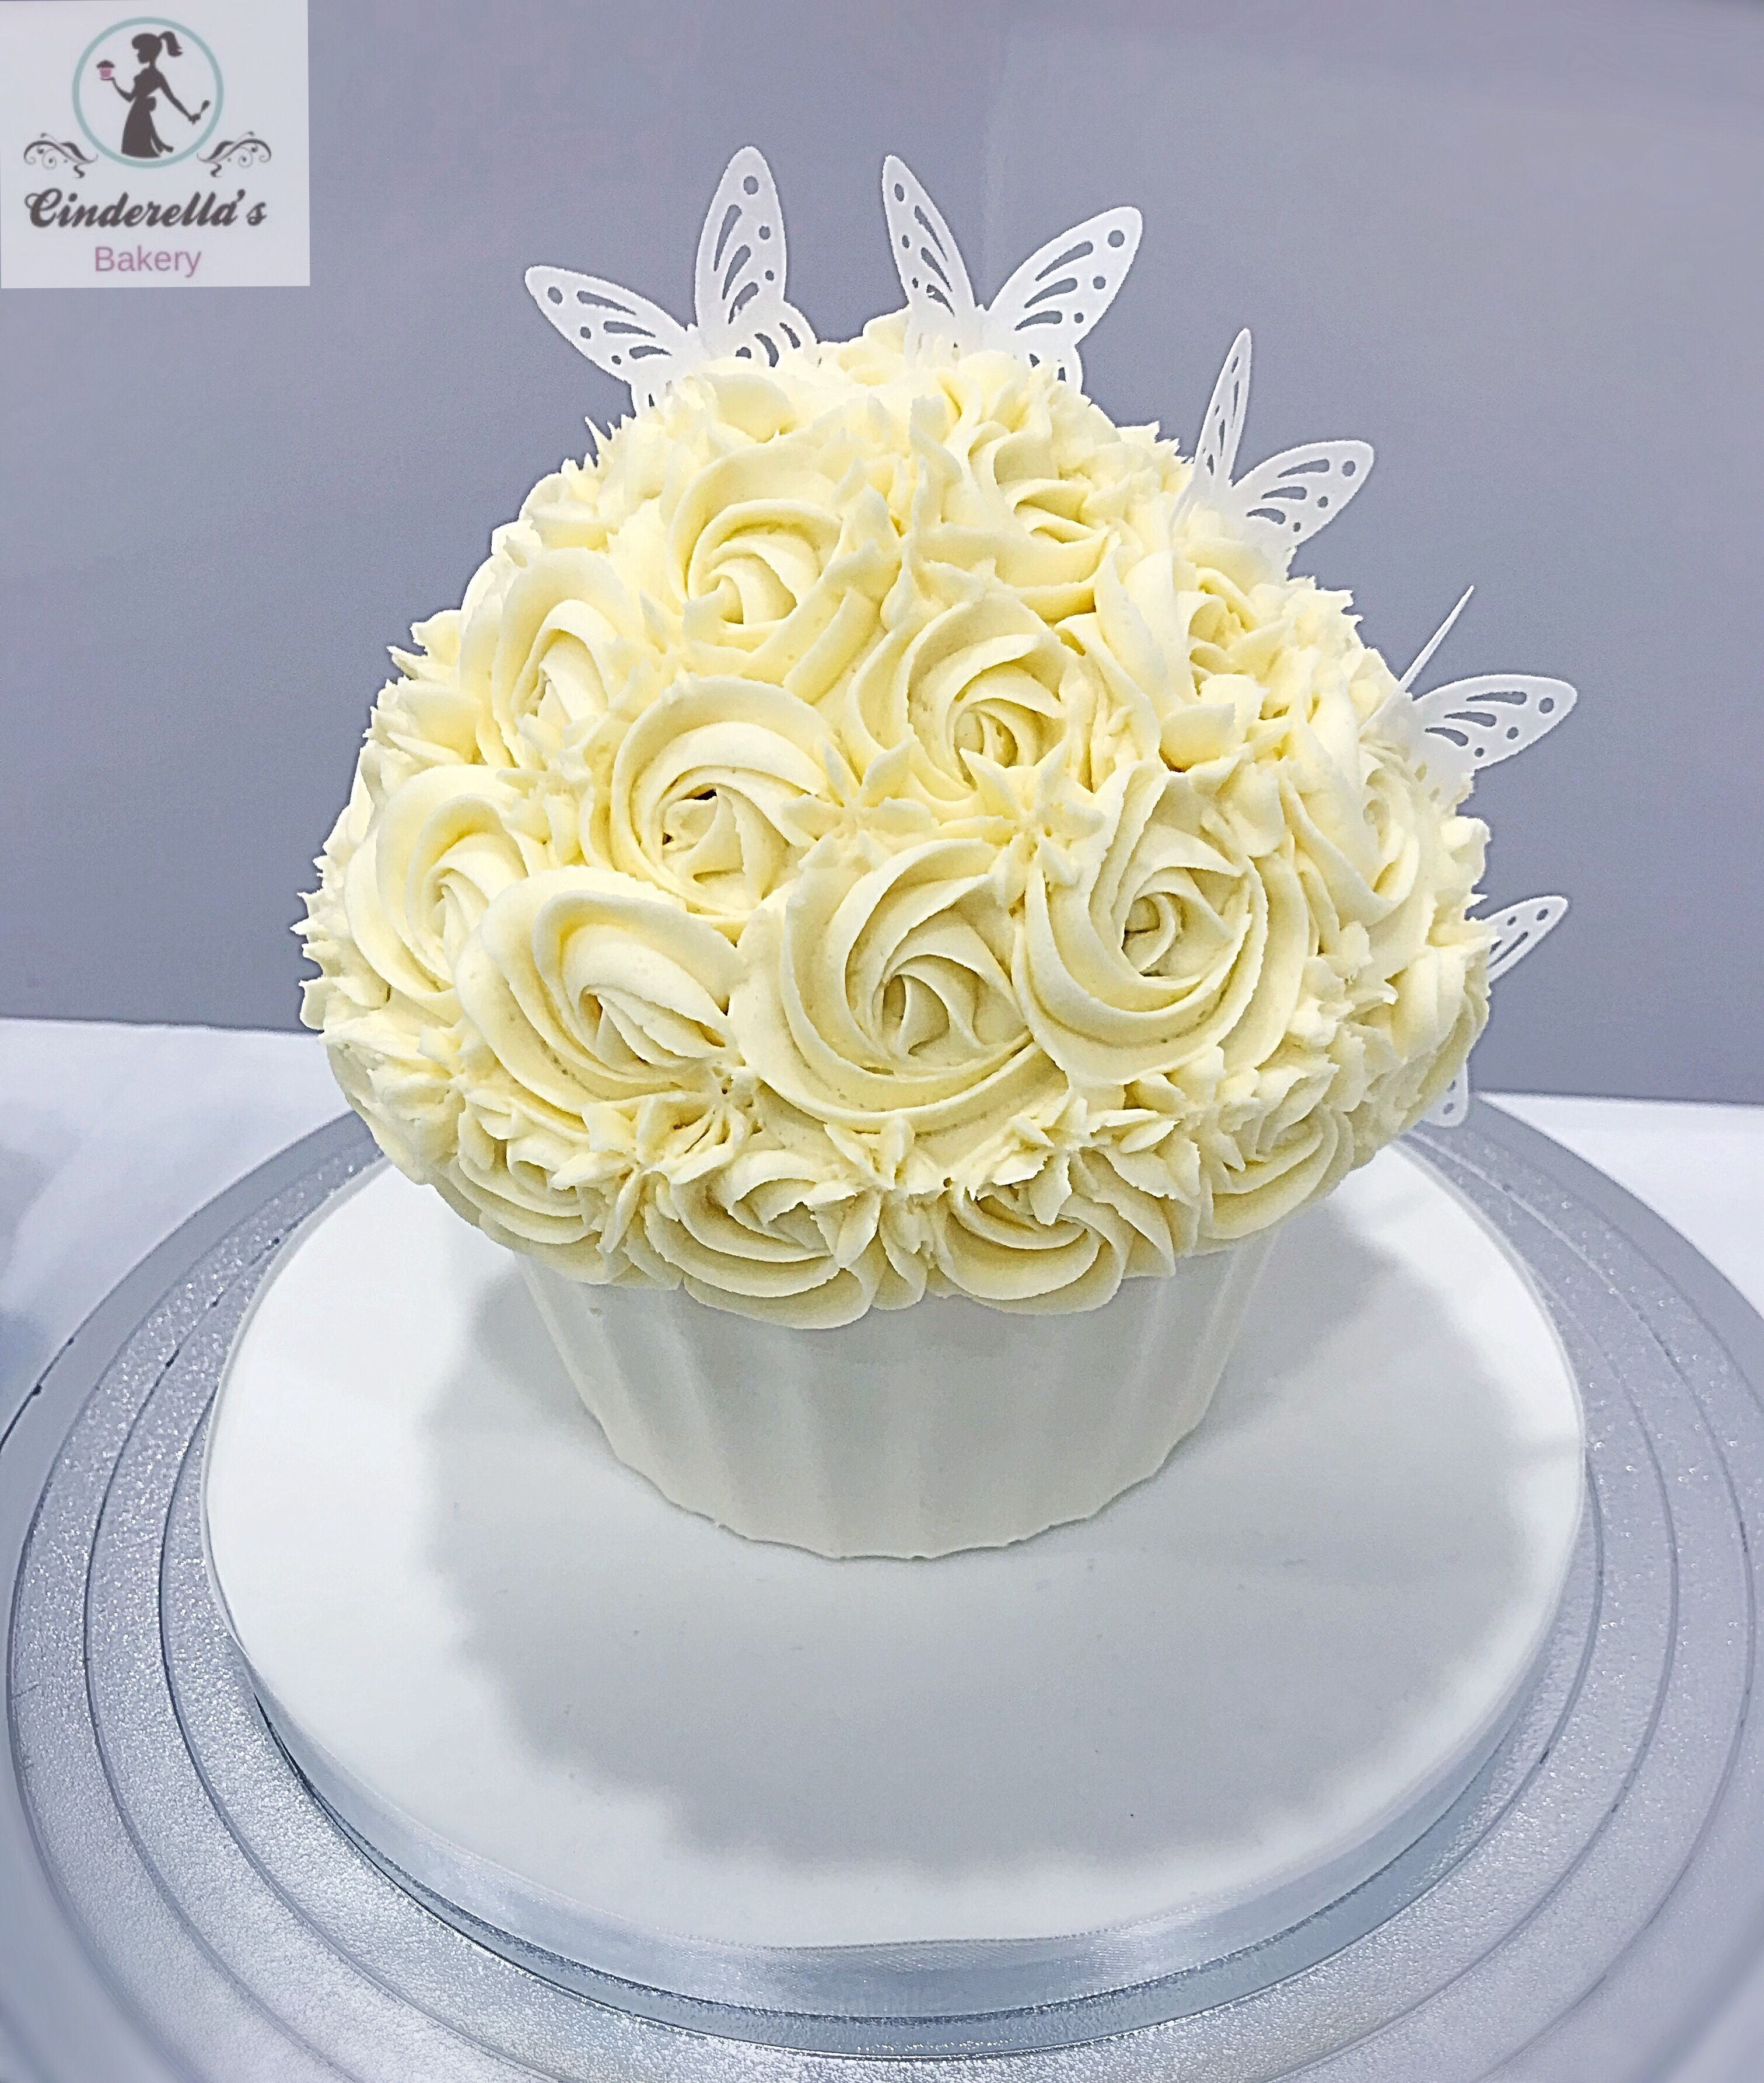 Pin by Cinderella\'s Bakery on Cinderella\'s Bakery - Giant Cupcakes ...